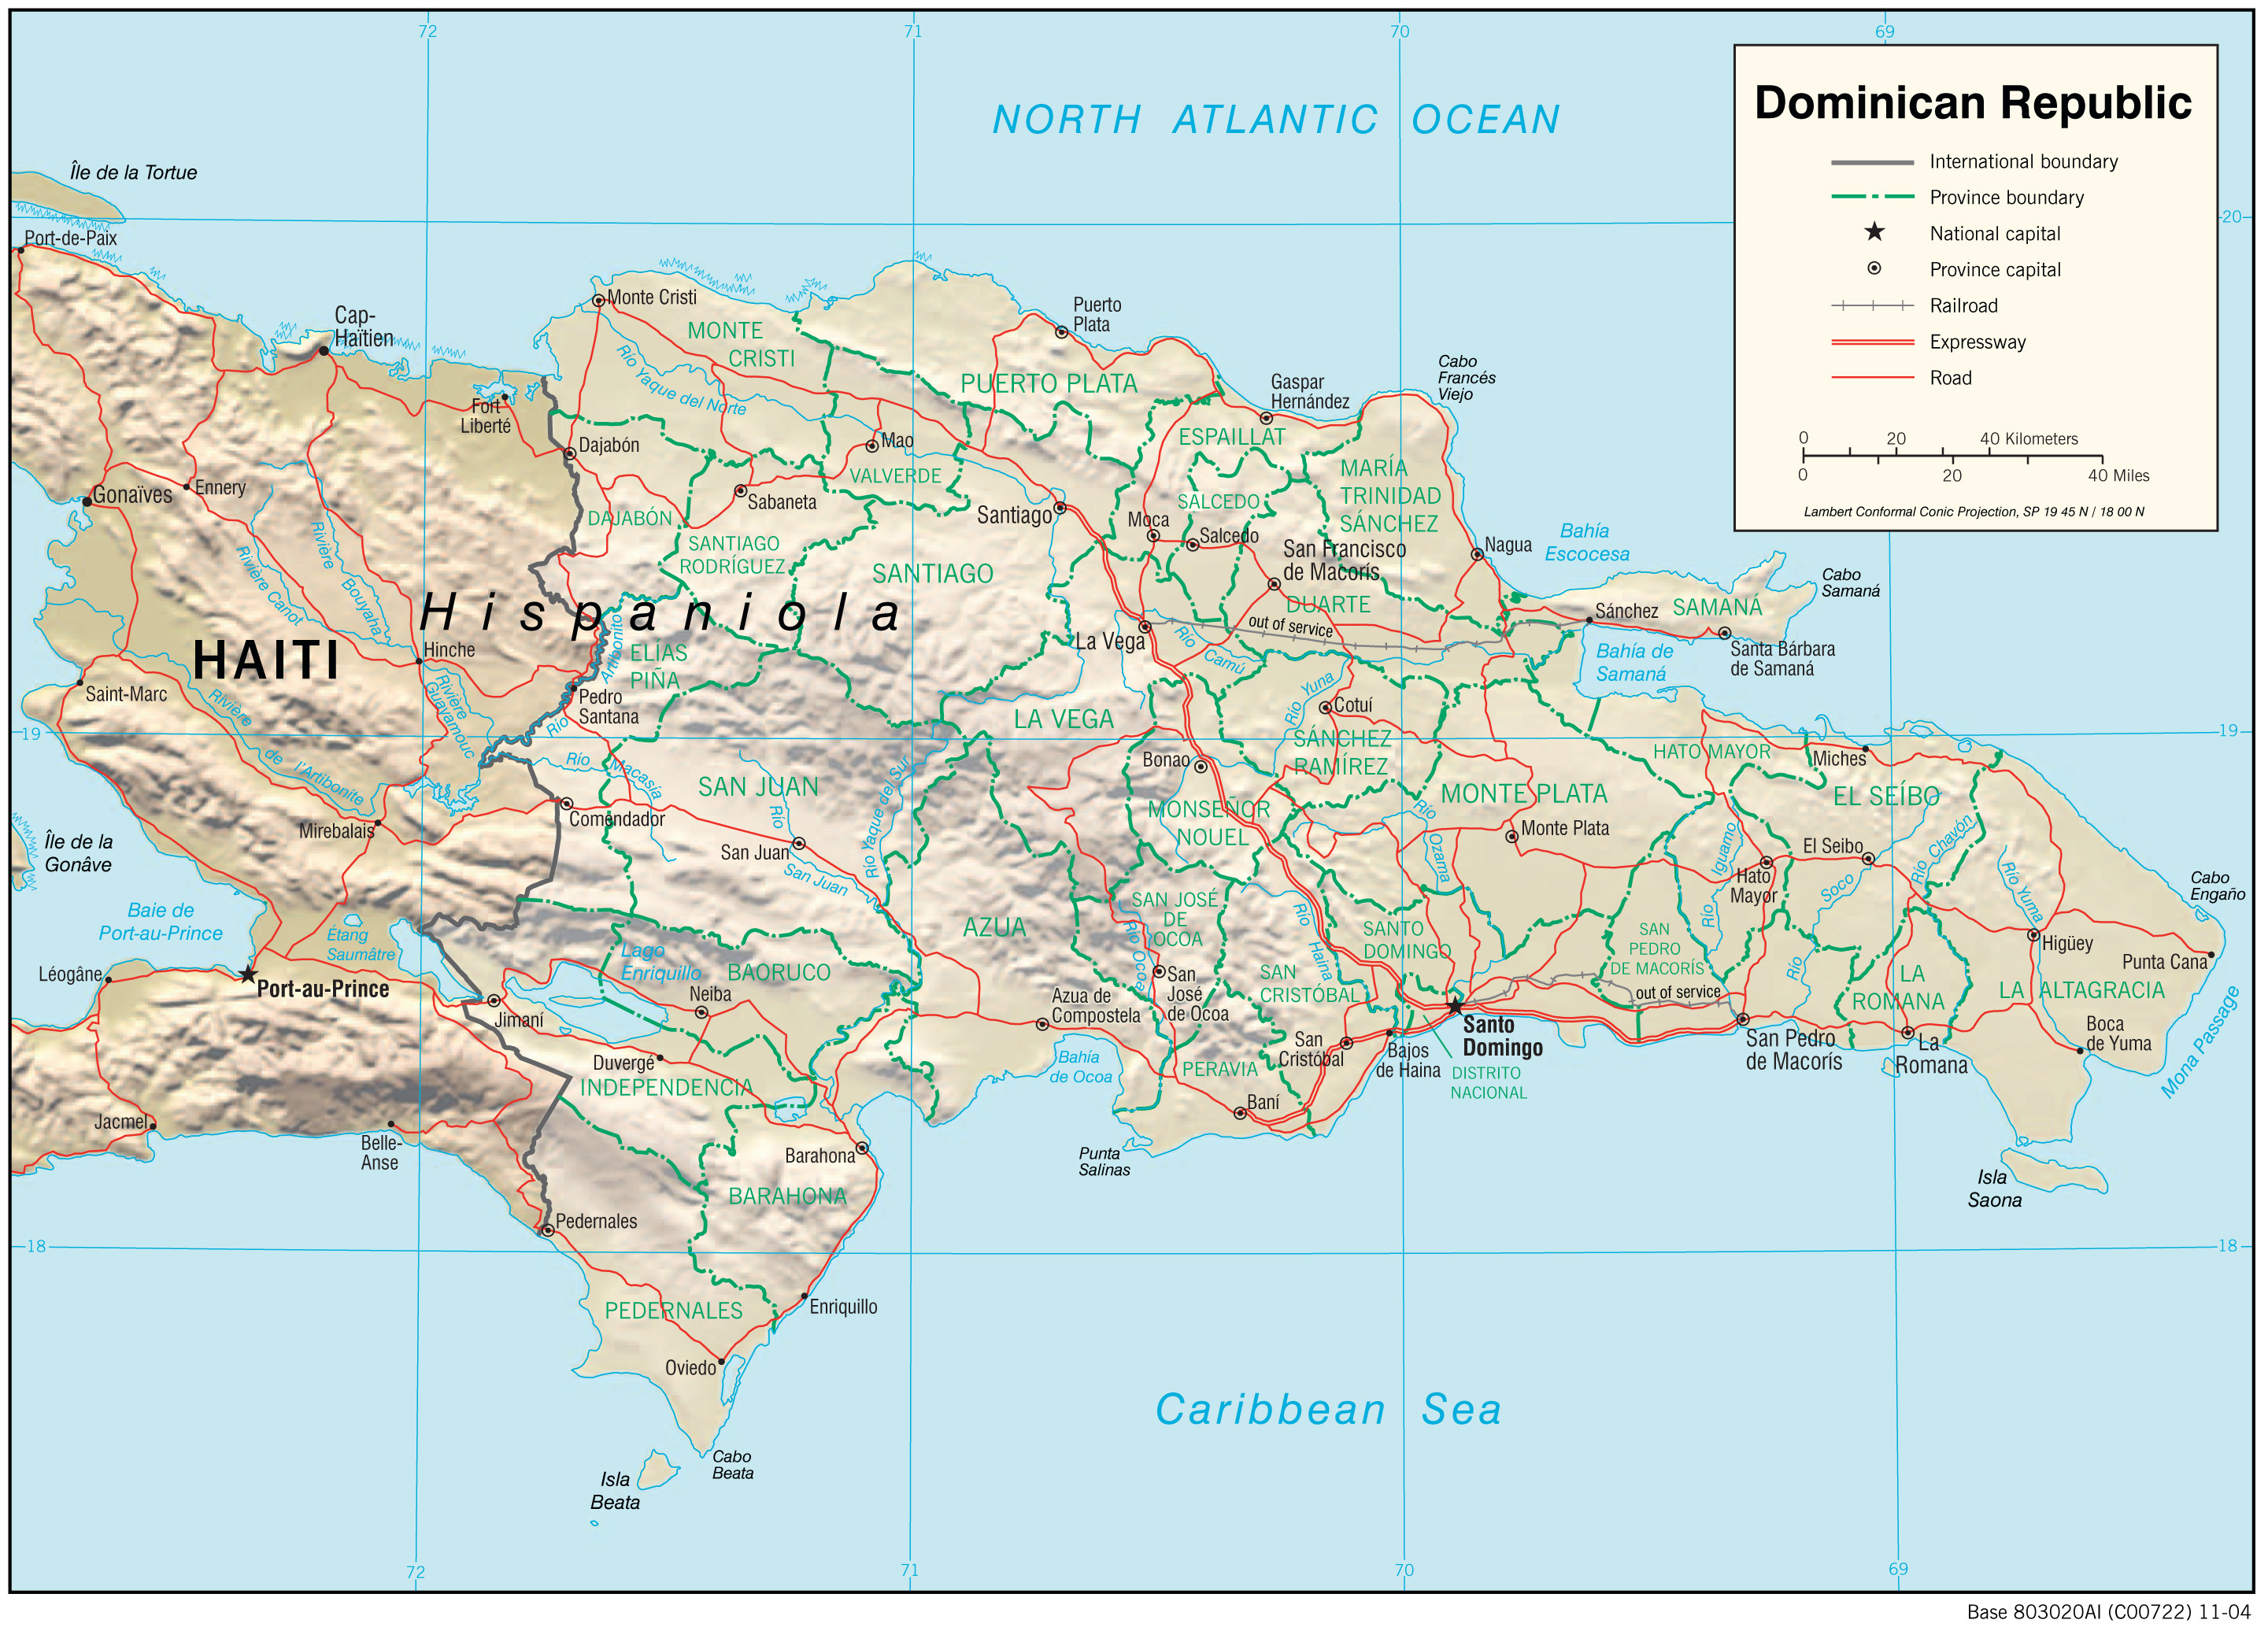 Dominican Republic Maps - Perry-Castañeda Map Collection - UT ... on